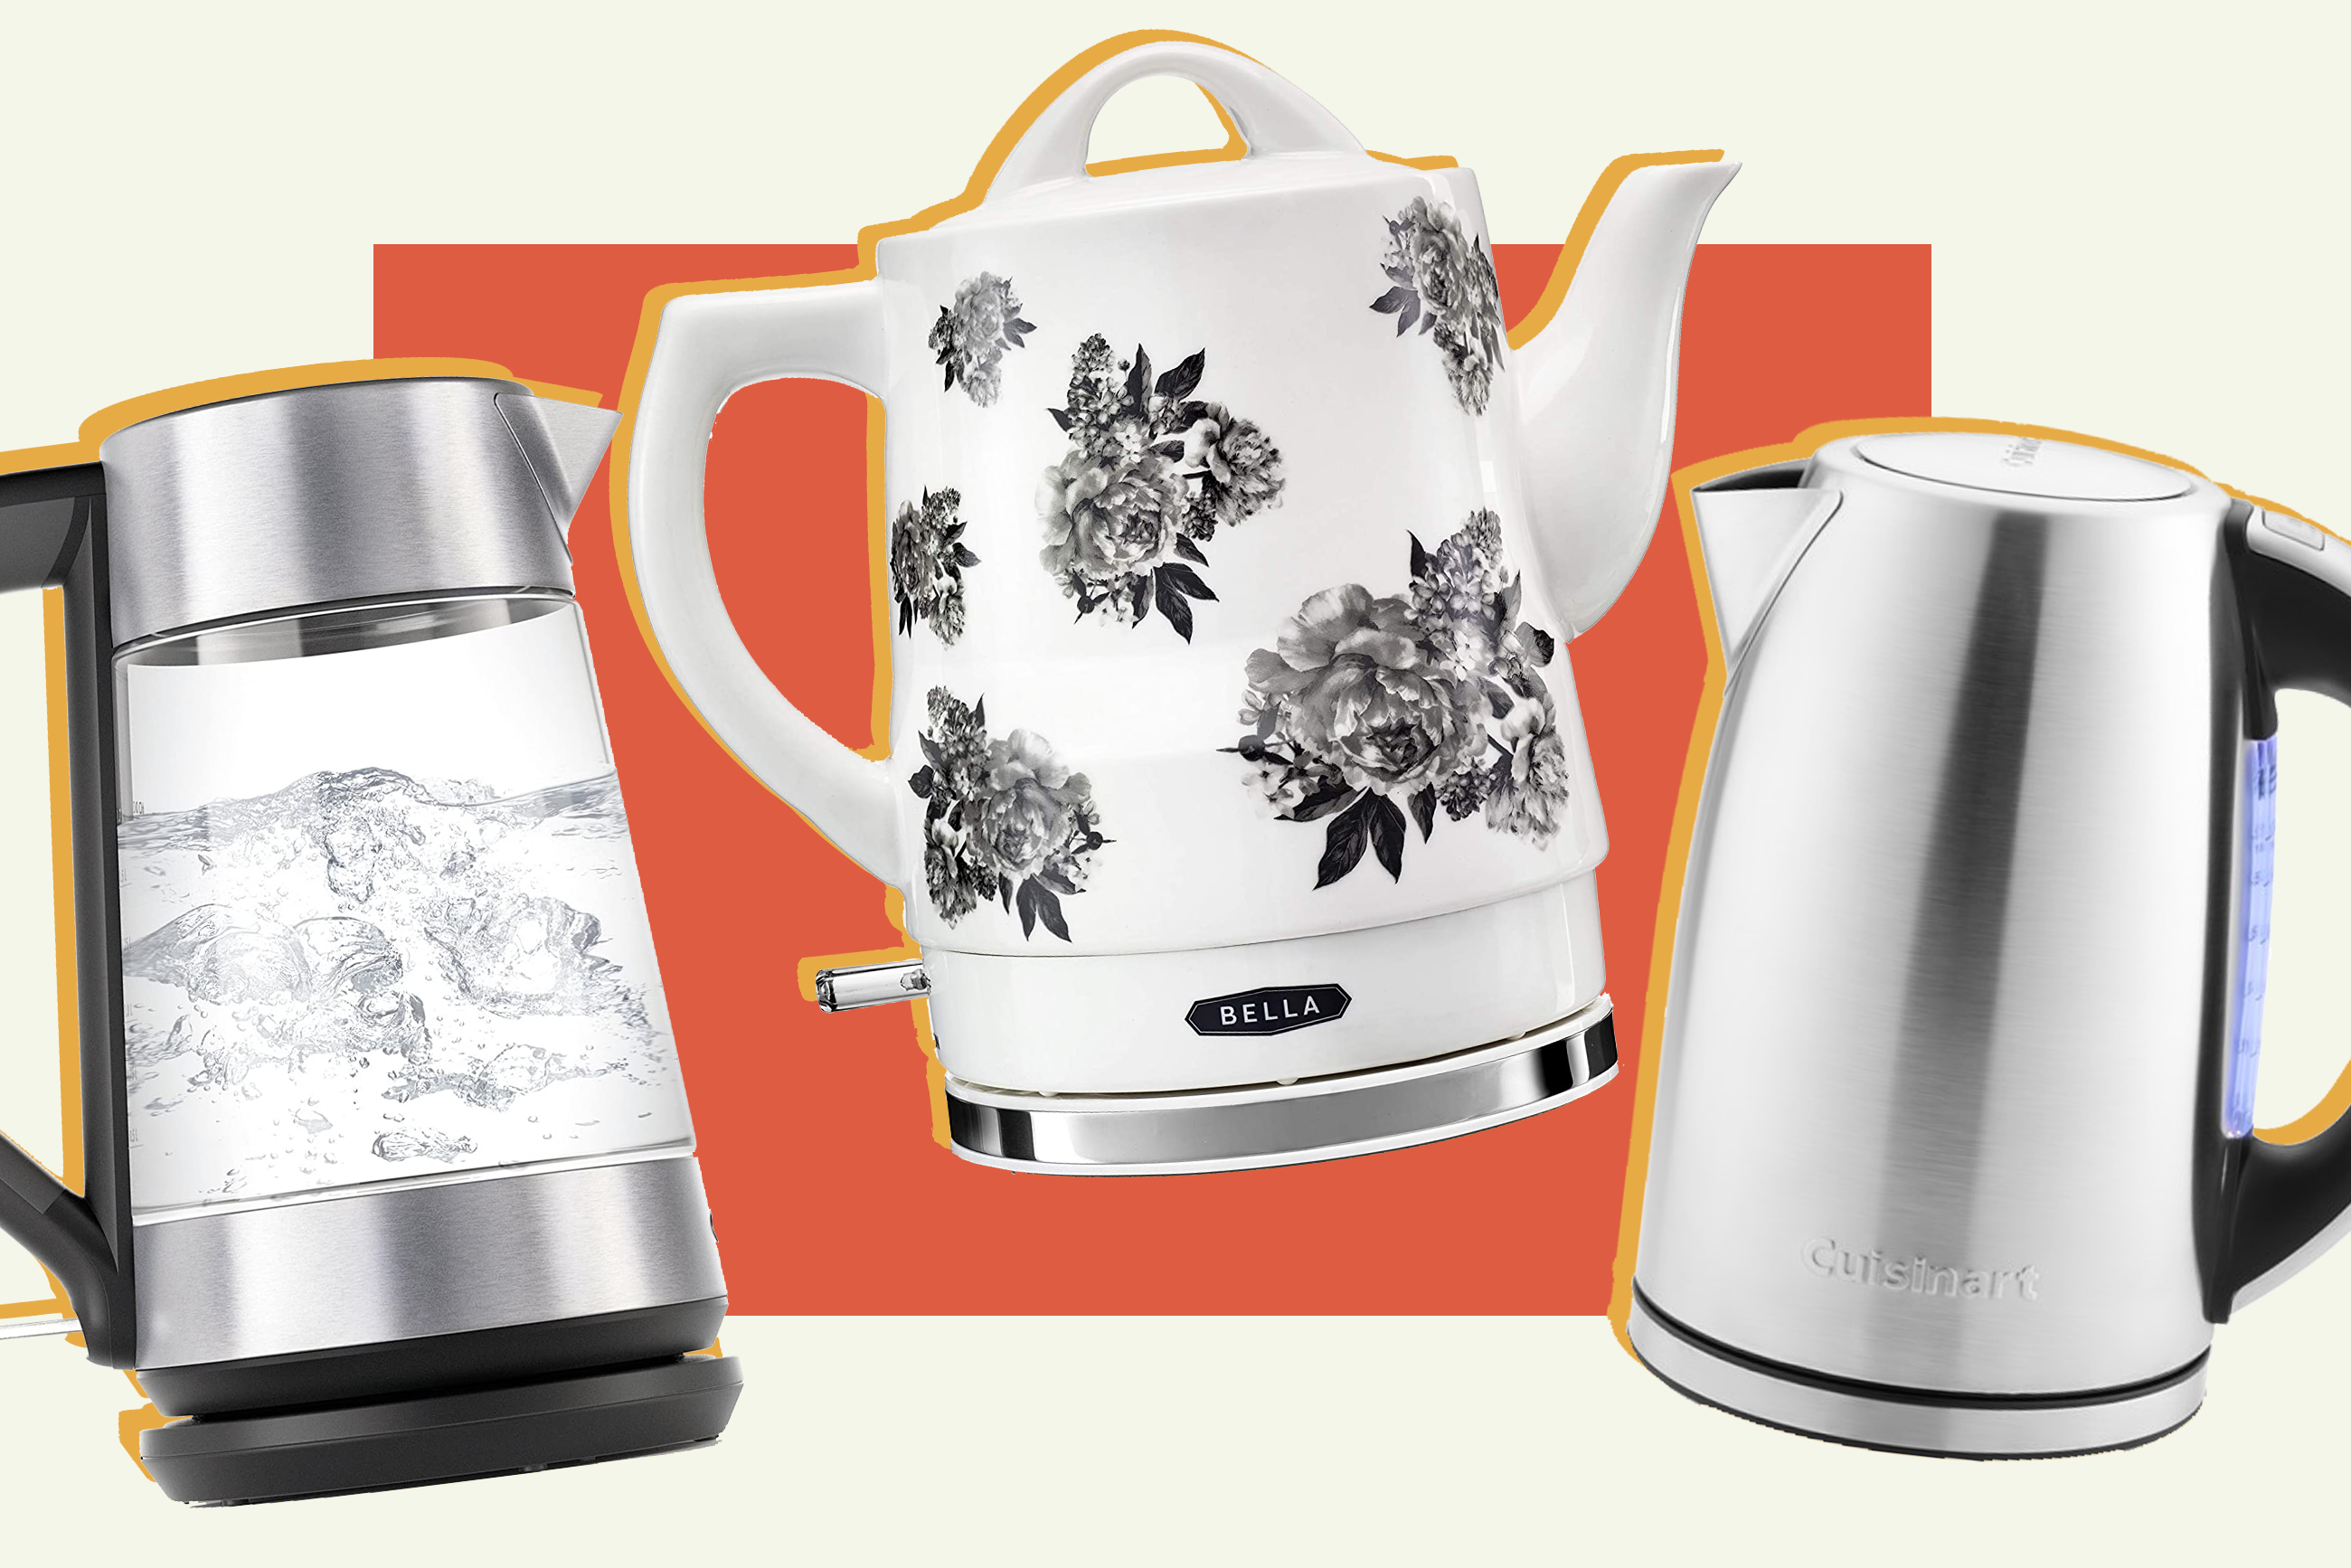 3 electric kettles are displayed on a colorful background